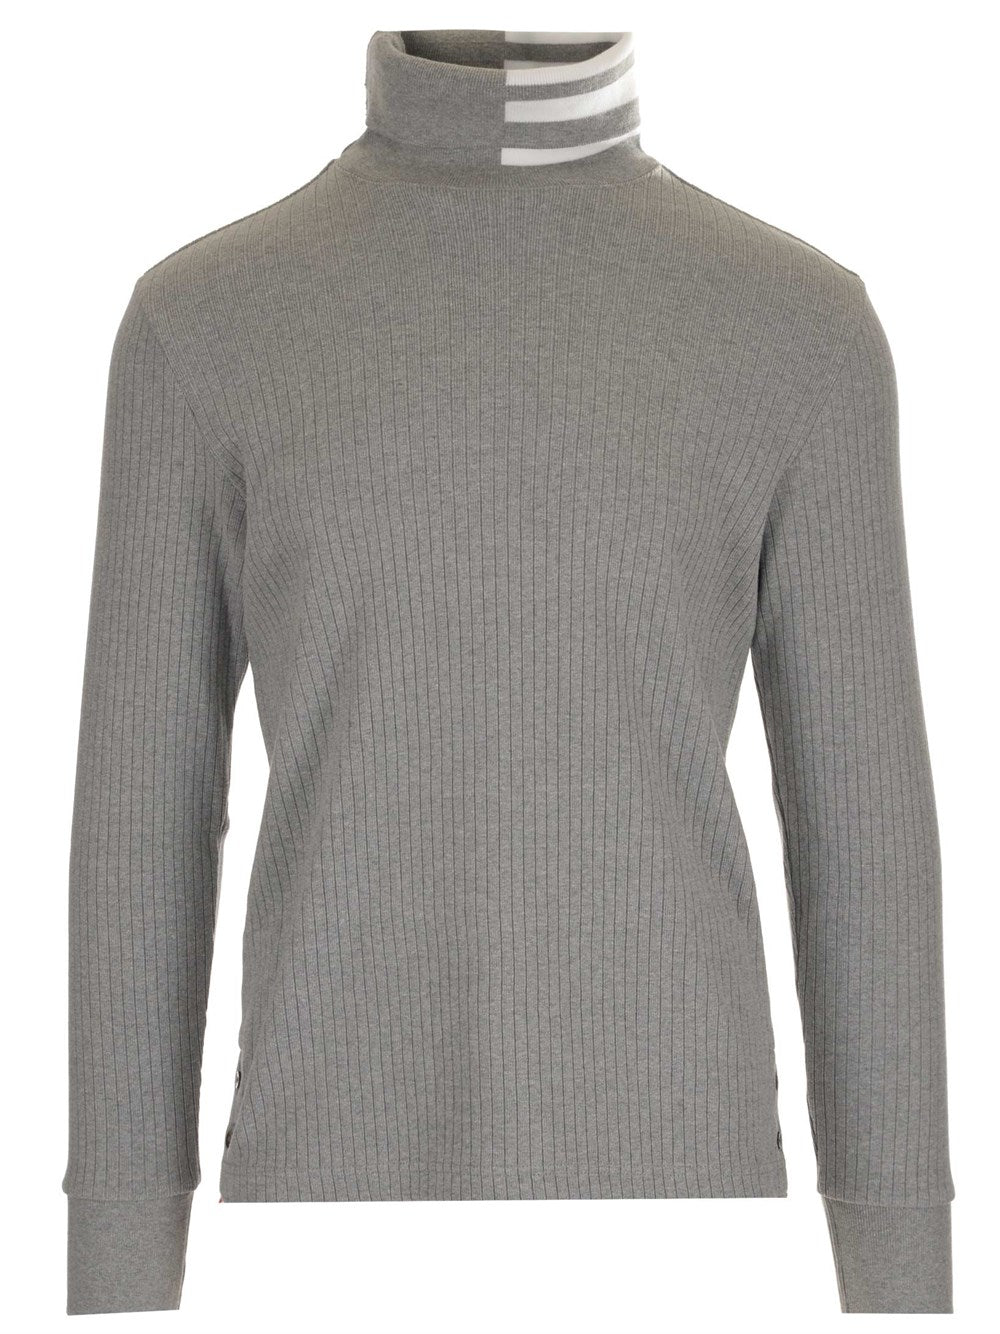 Thom Browne Cottons THOM BROWNE STRIPE DETAILED TURTLENECK SWEATER